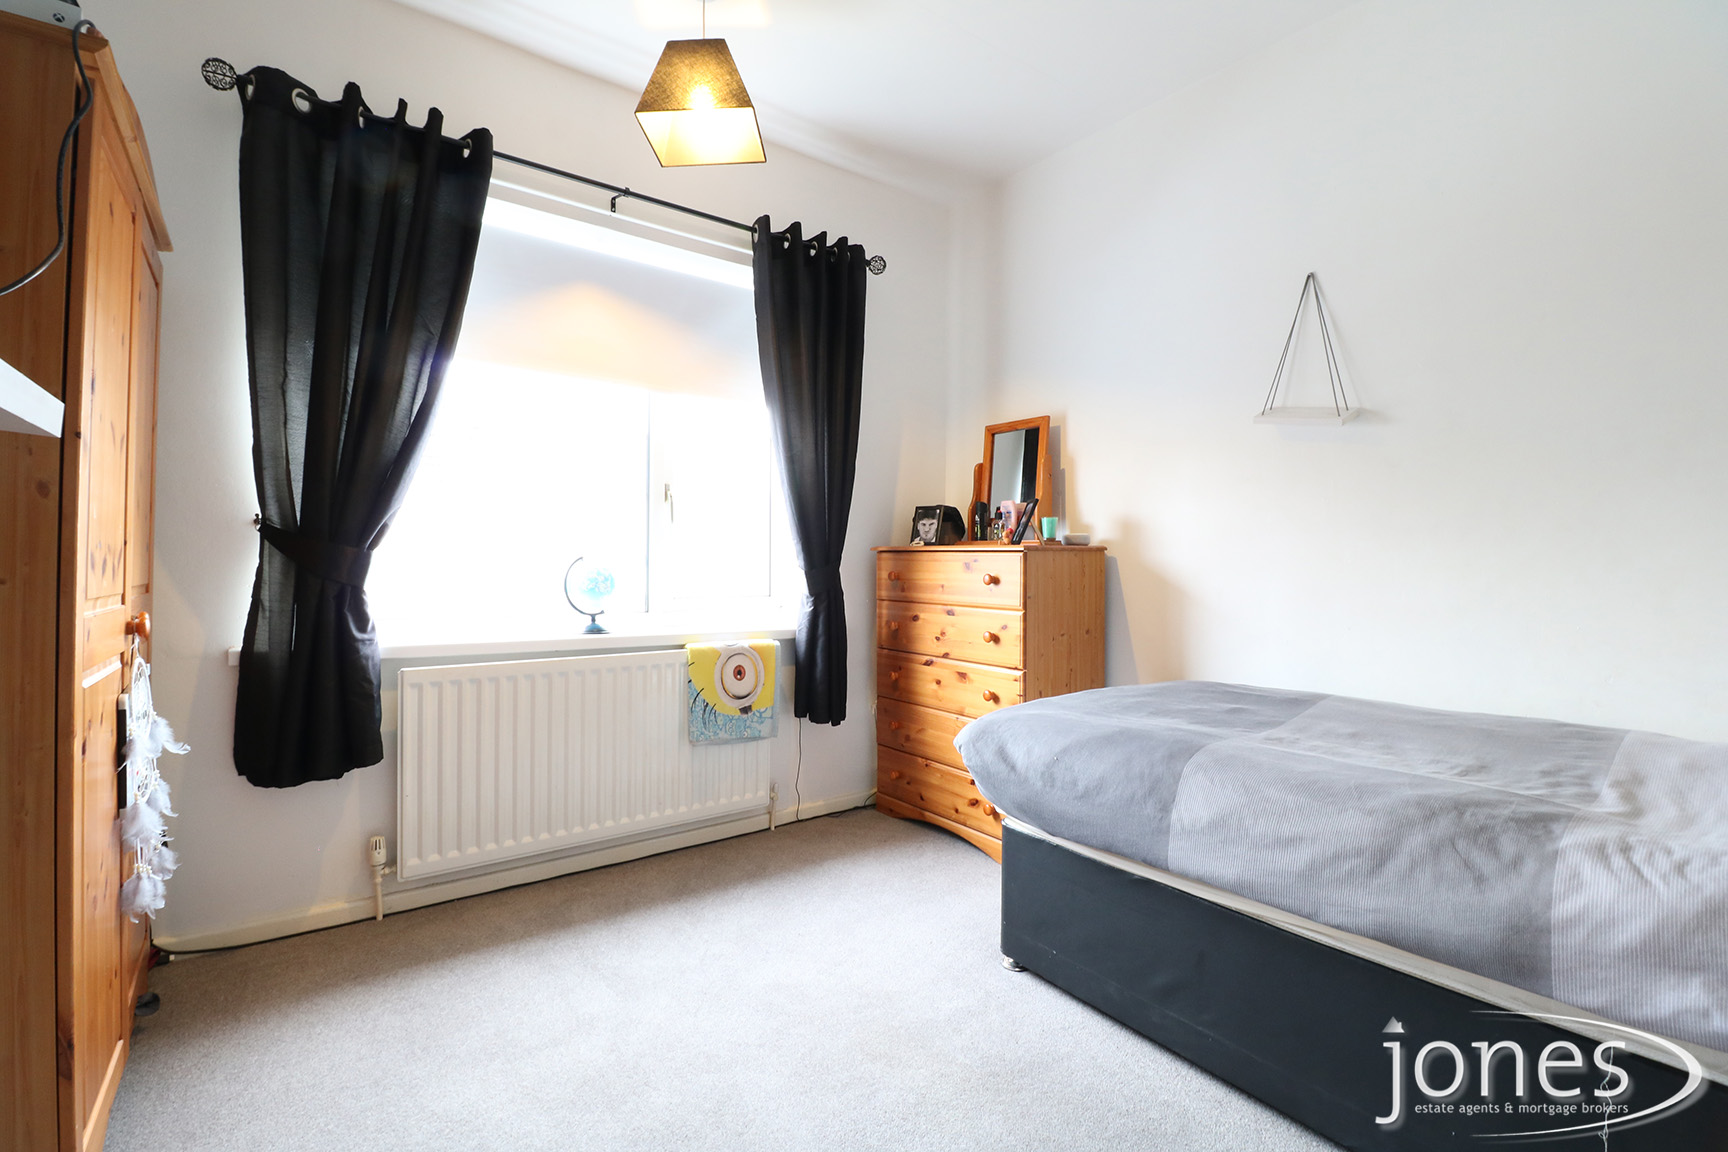 Home for Sale Let - Photo 08 Grange Avenue, Billingham, TS23 1JH